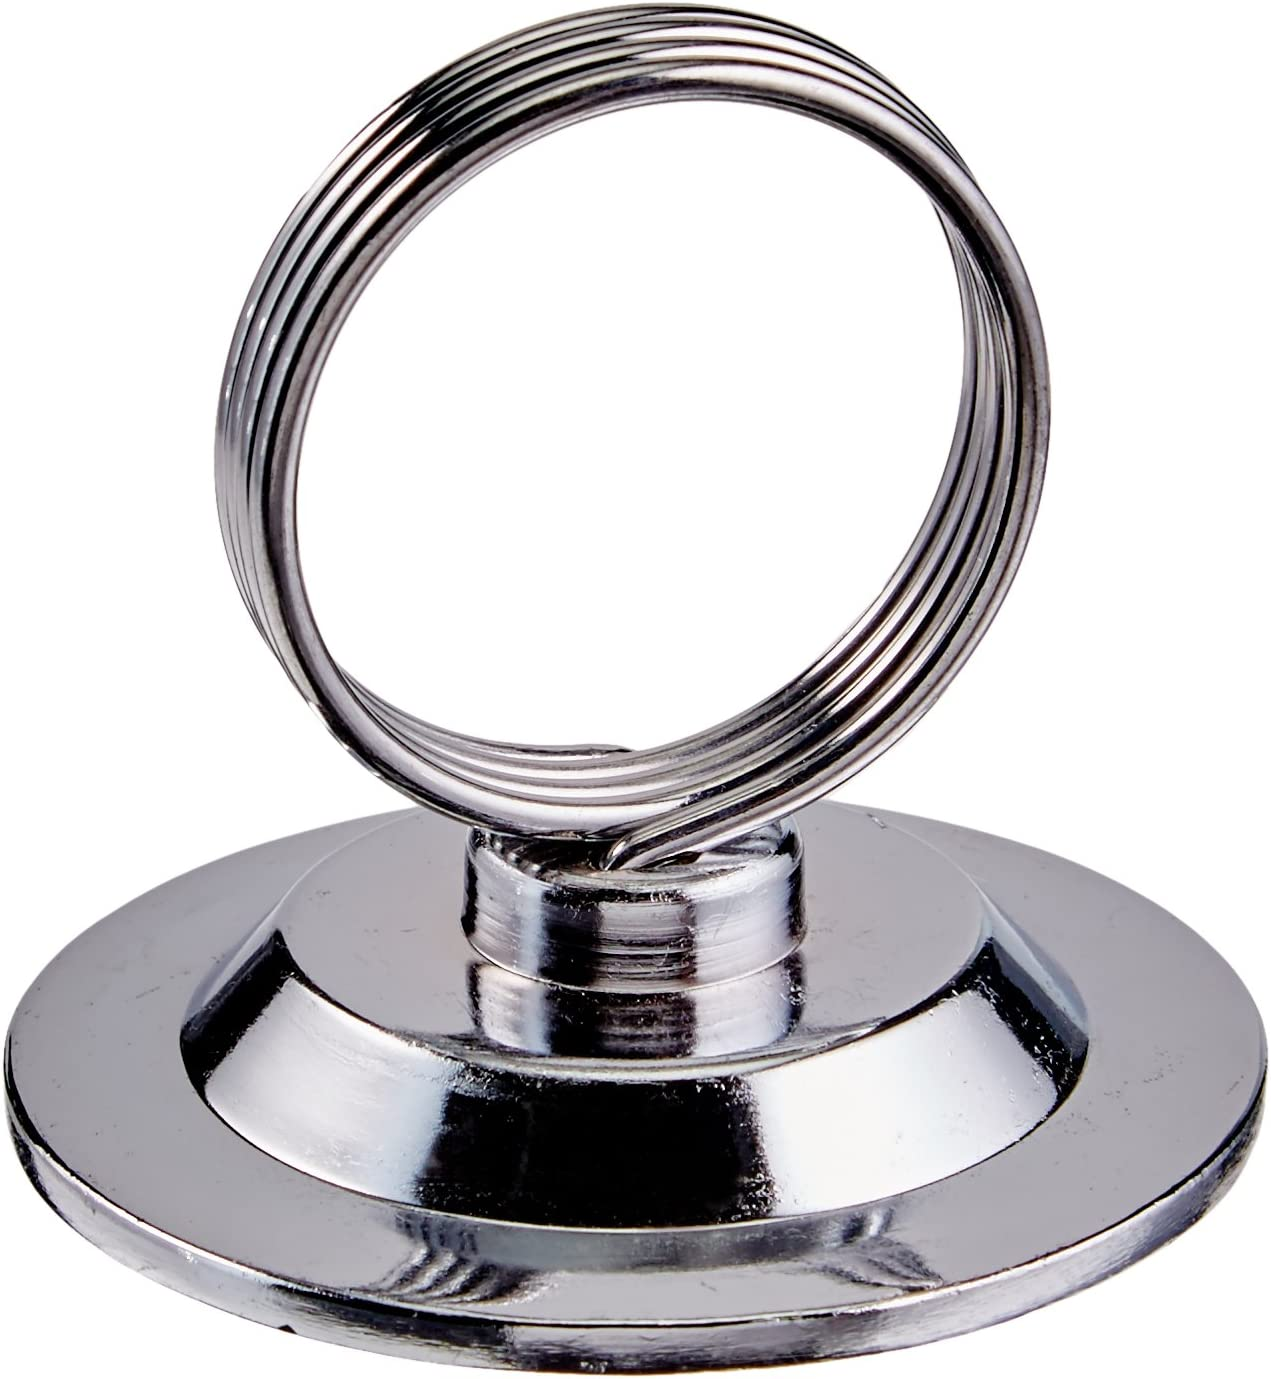 stainless steel card/&recipe/&table Number holder,new for hotel,restaurant dinning